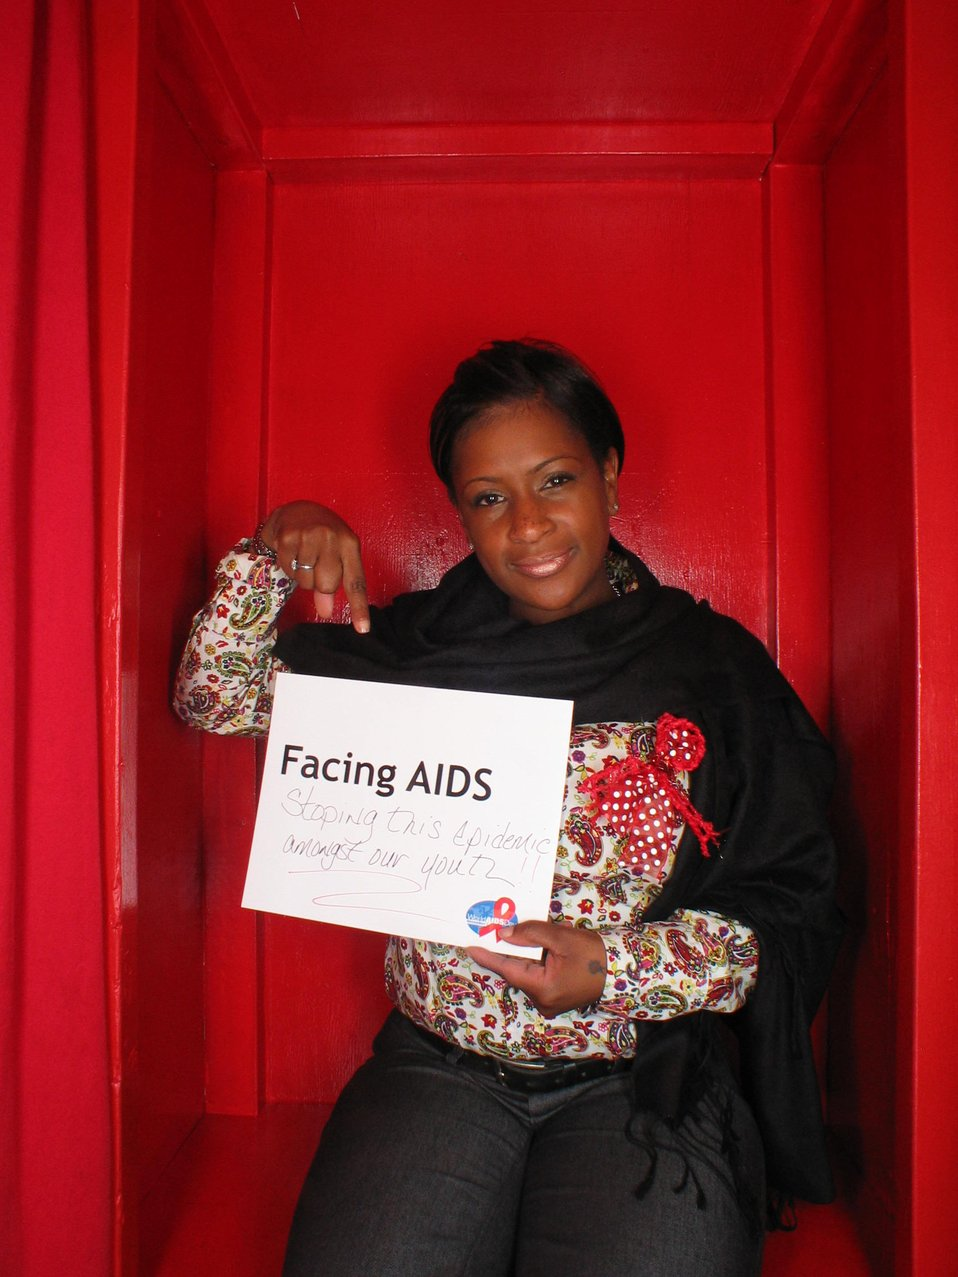 Facing AIDS stoping this epidemic ... our youth!!!